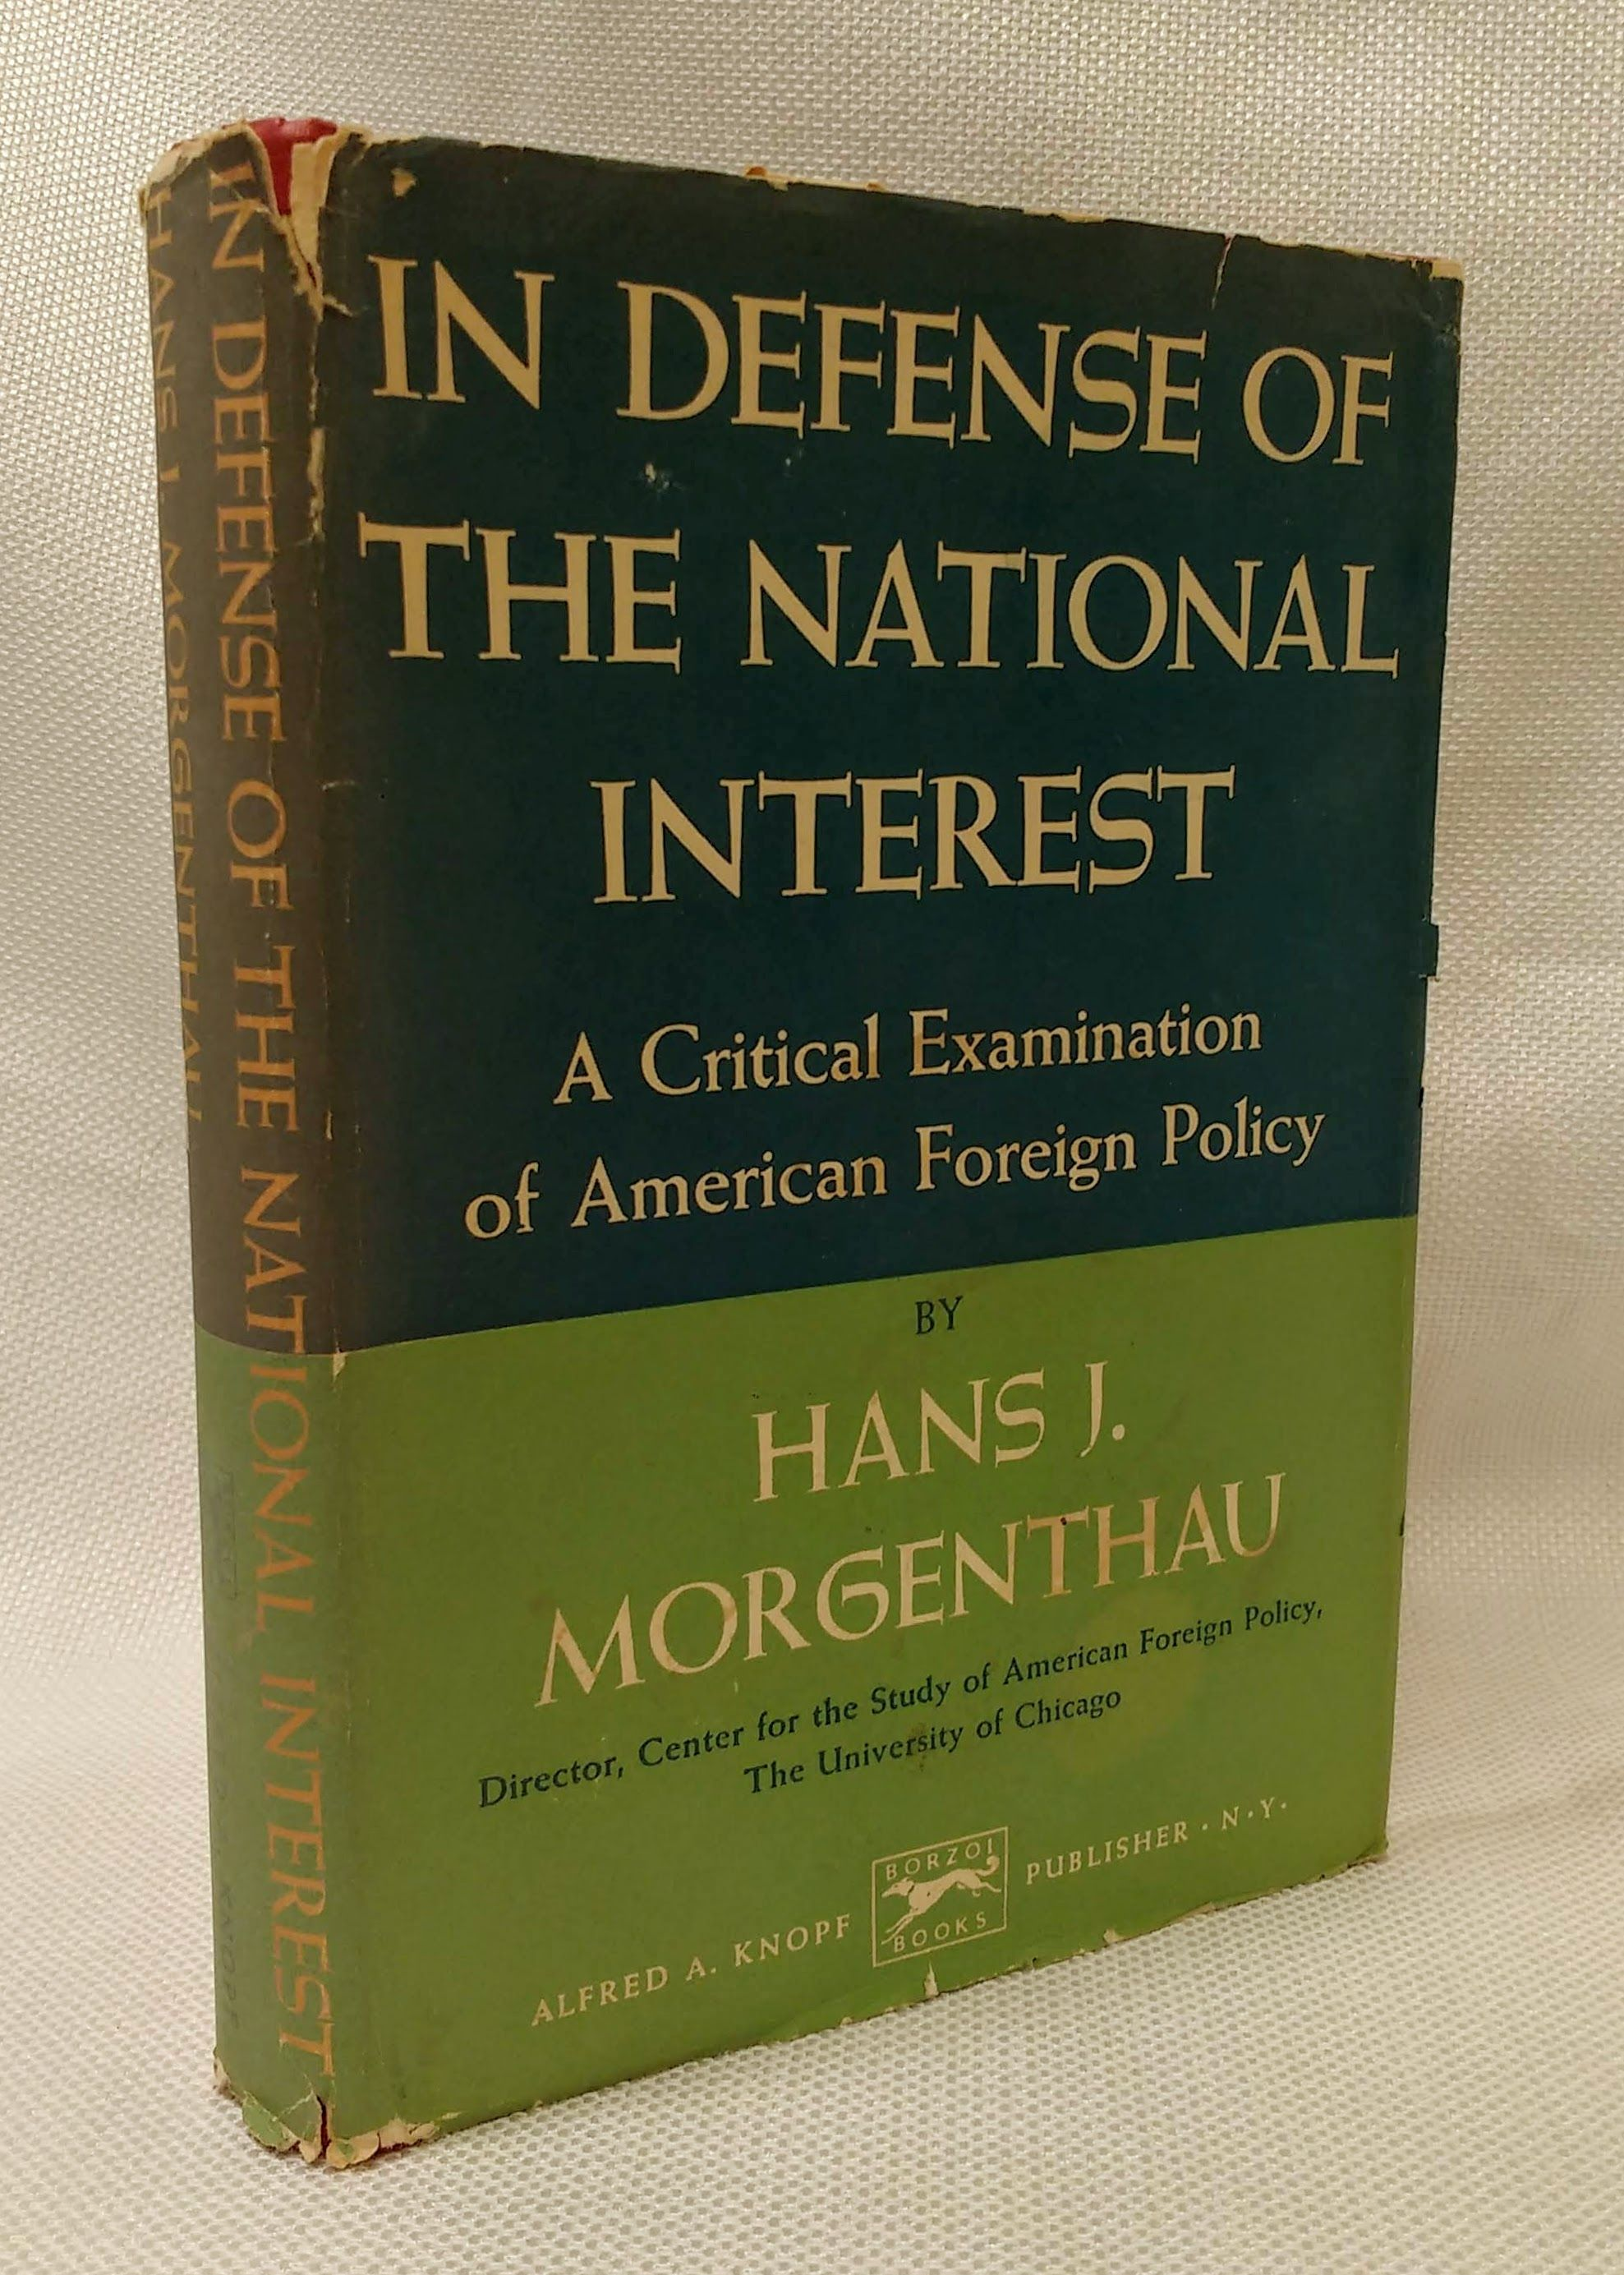 In Defense of the National Interest: A Critical Examination of American Foreign Policy, Morgenthau, Hans Joachim